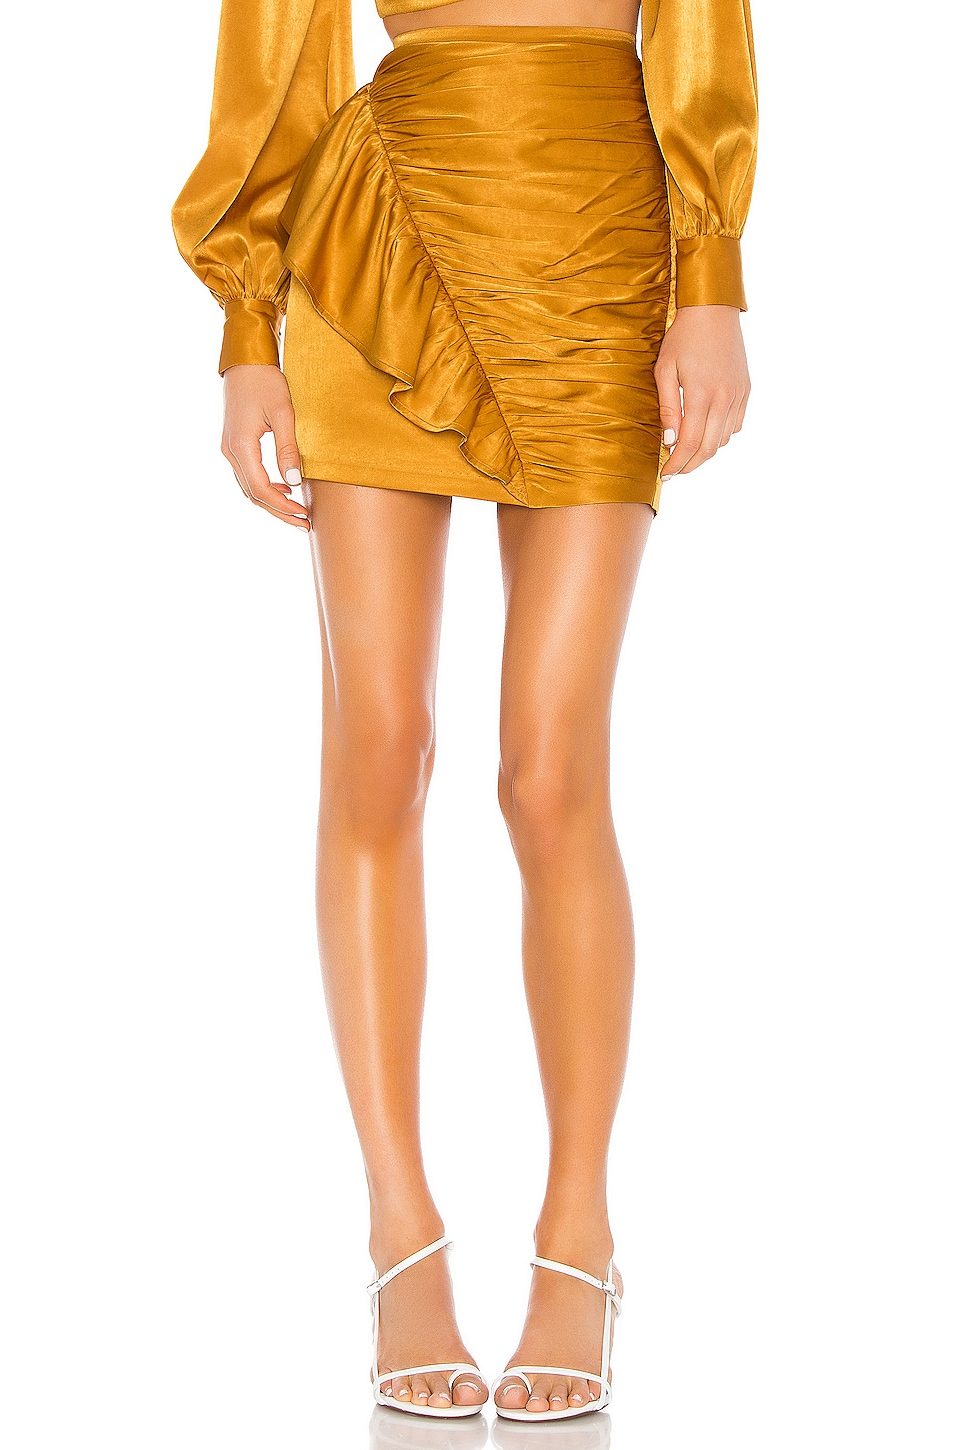 Camila Coelho Kaylee Mini Skirt in Gold